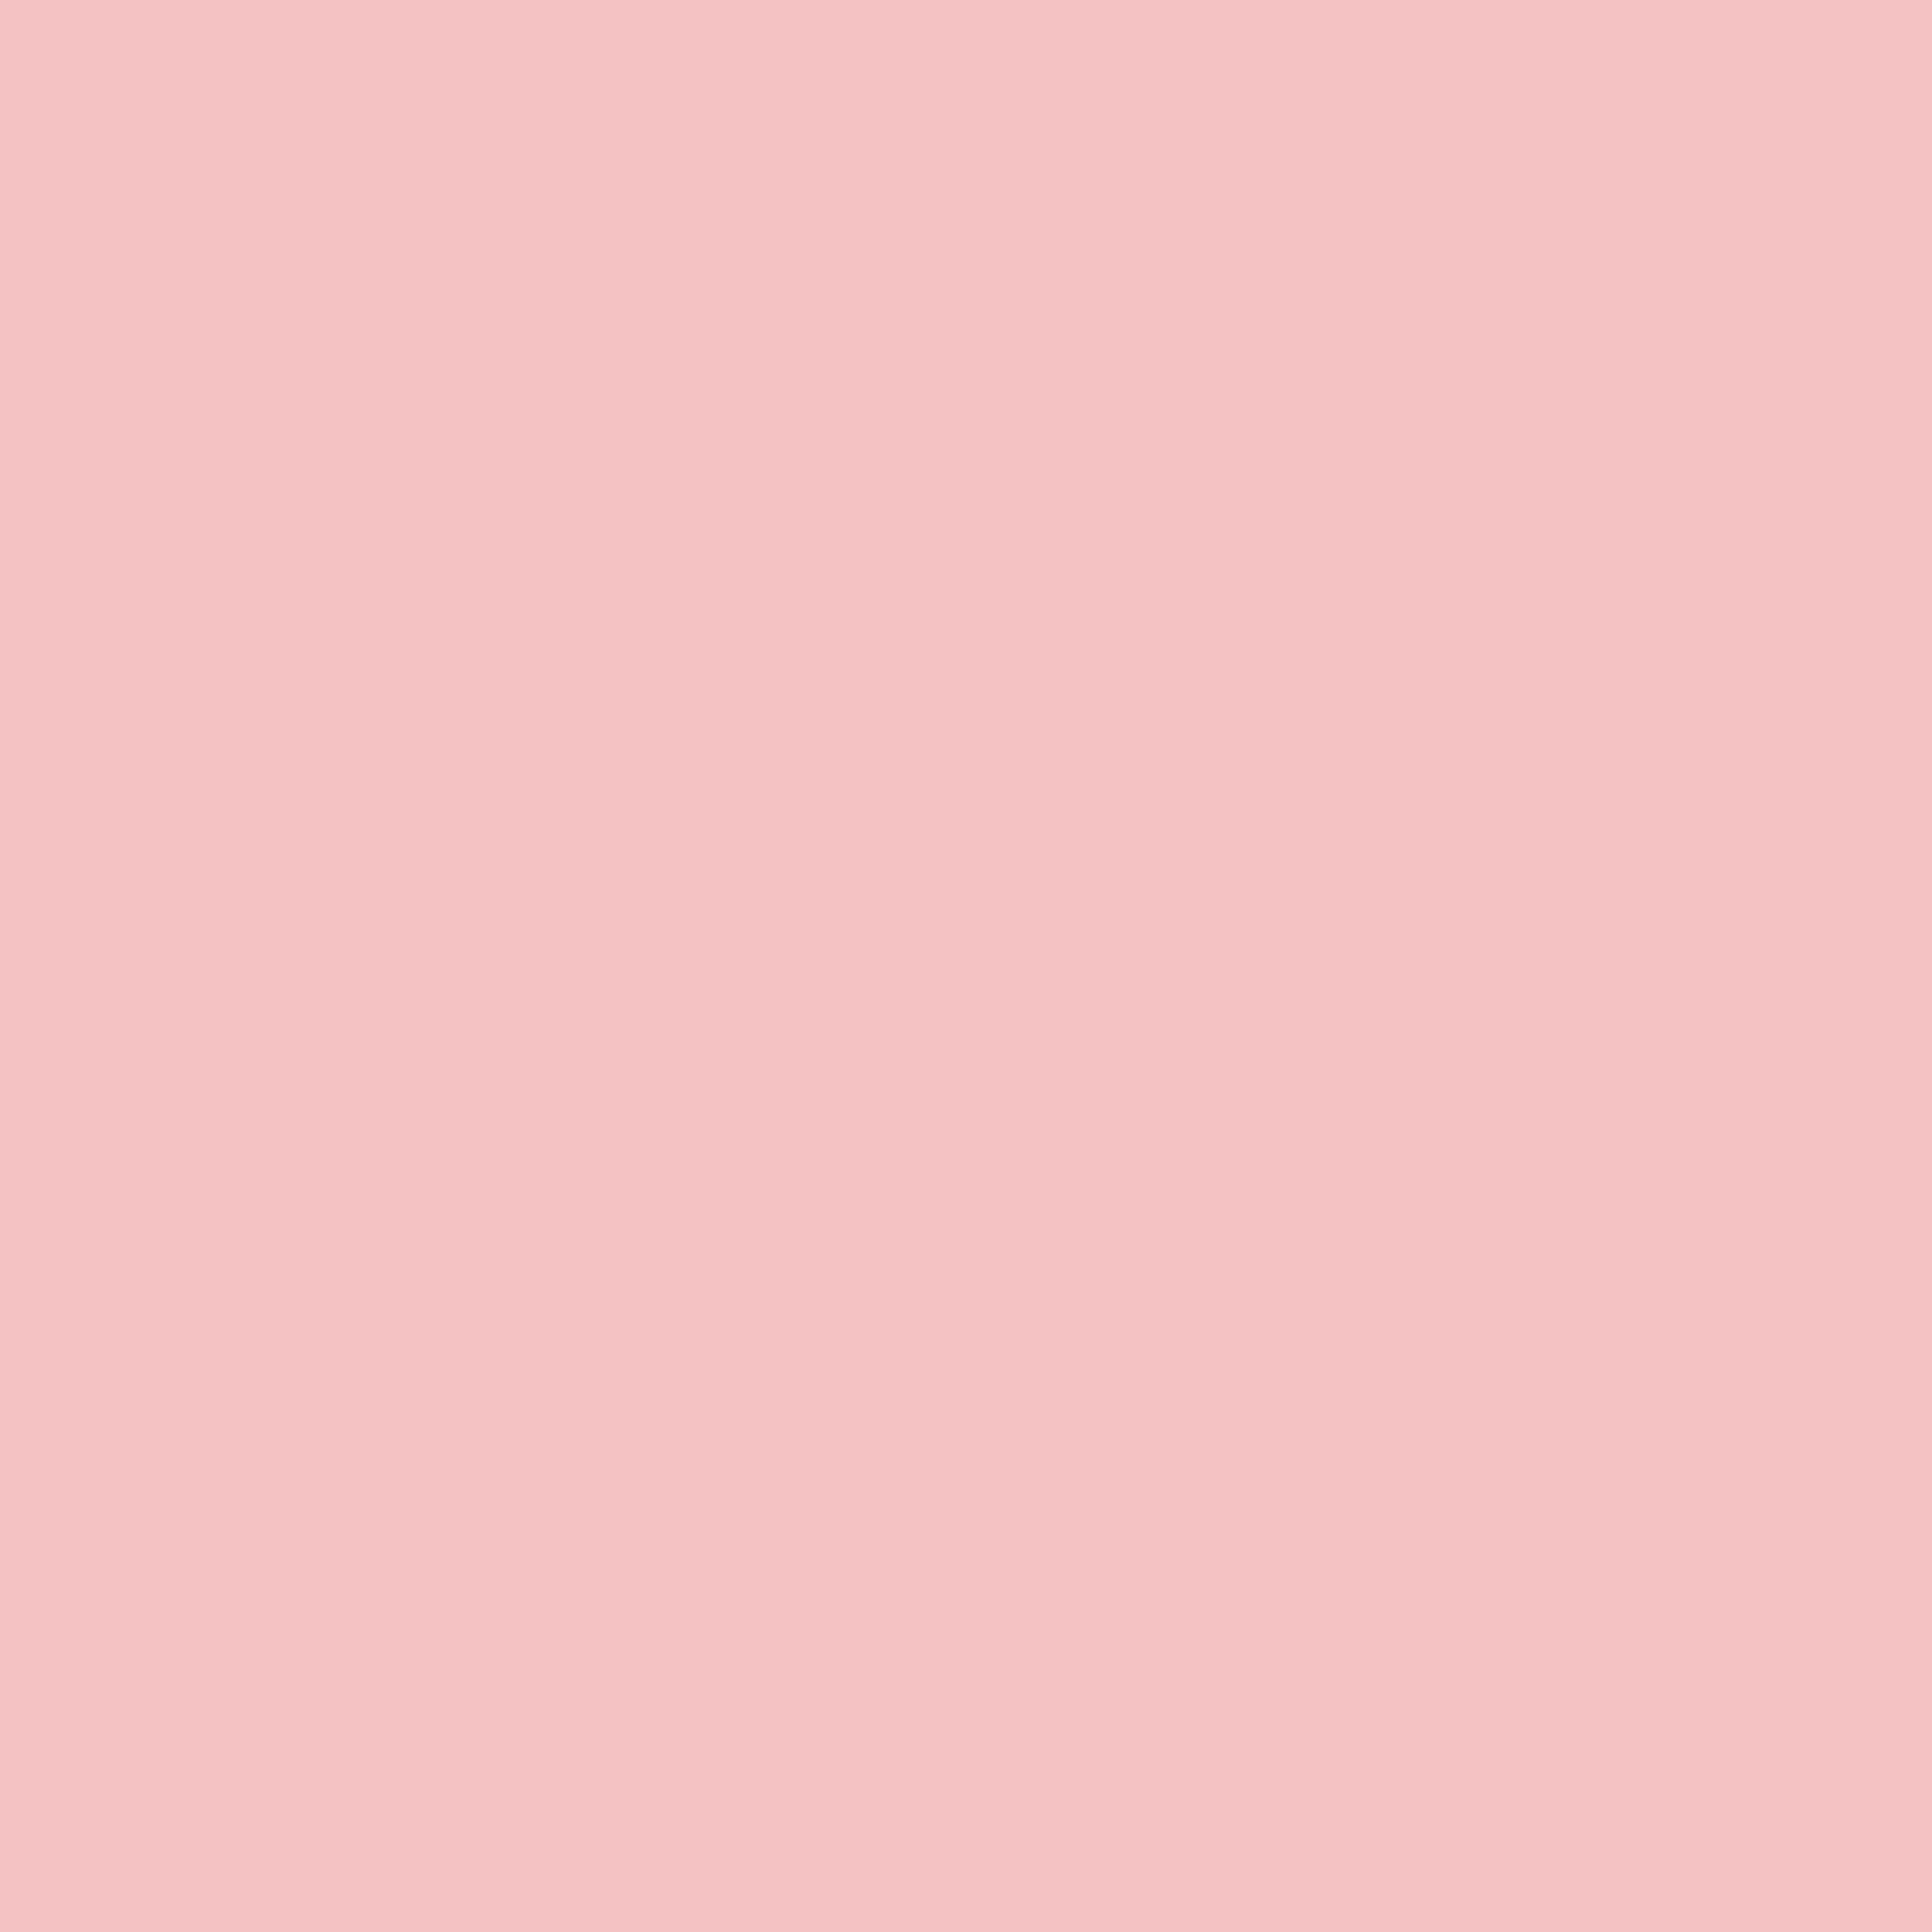 3600x3600 Baby Pink Solid Color Background